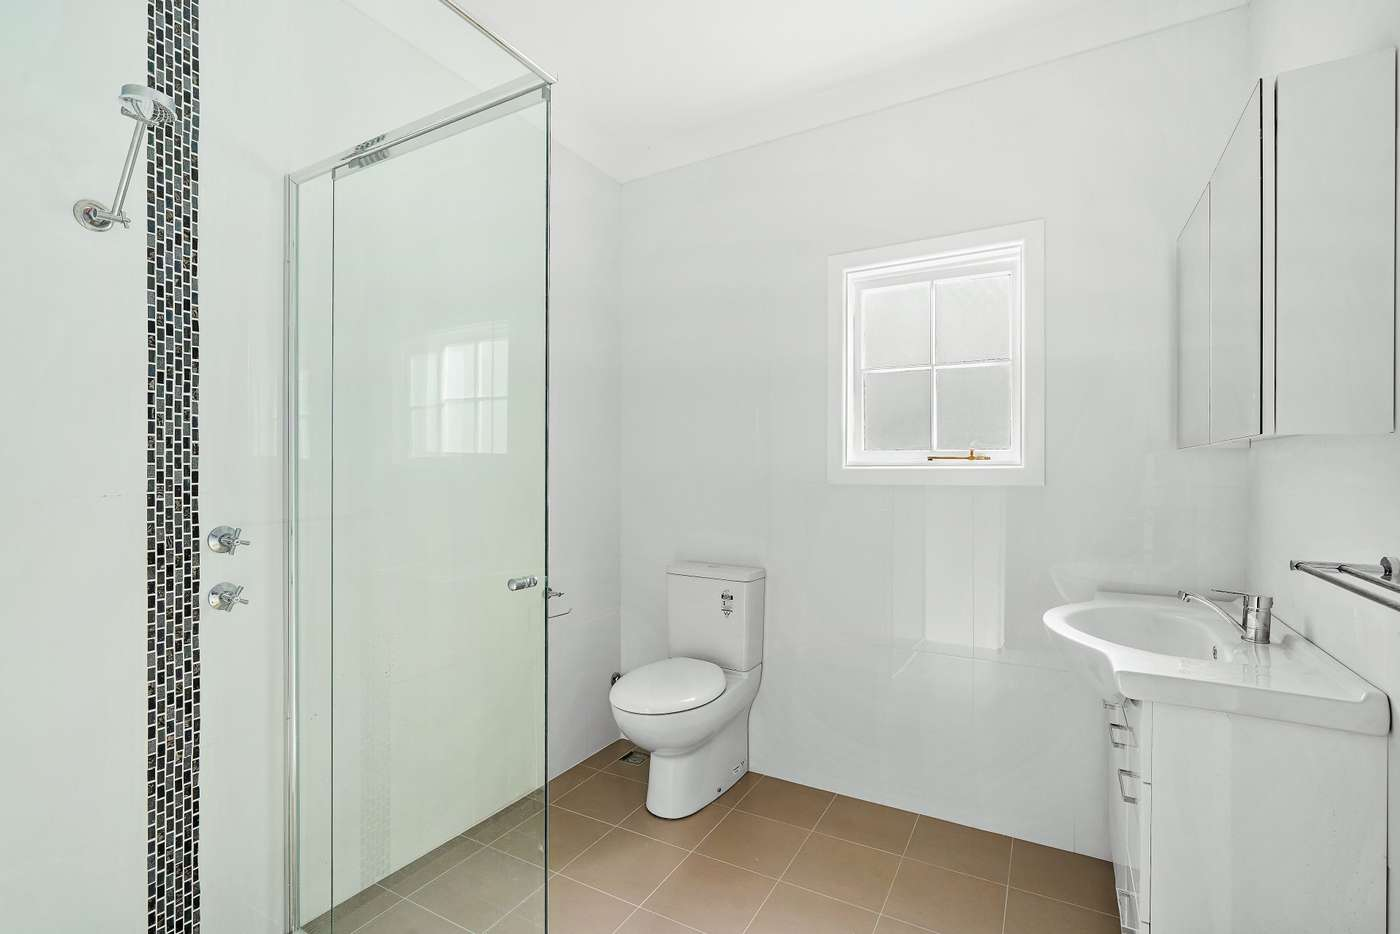 Seventh view of Homely house listing, 7 Mimosa Avenue, Saratoga NSW 2251